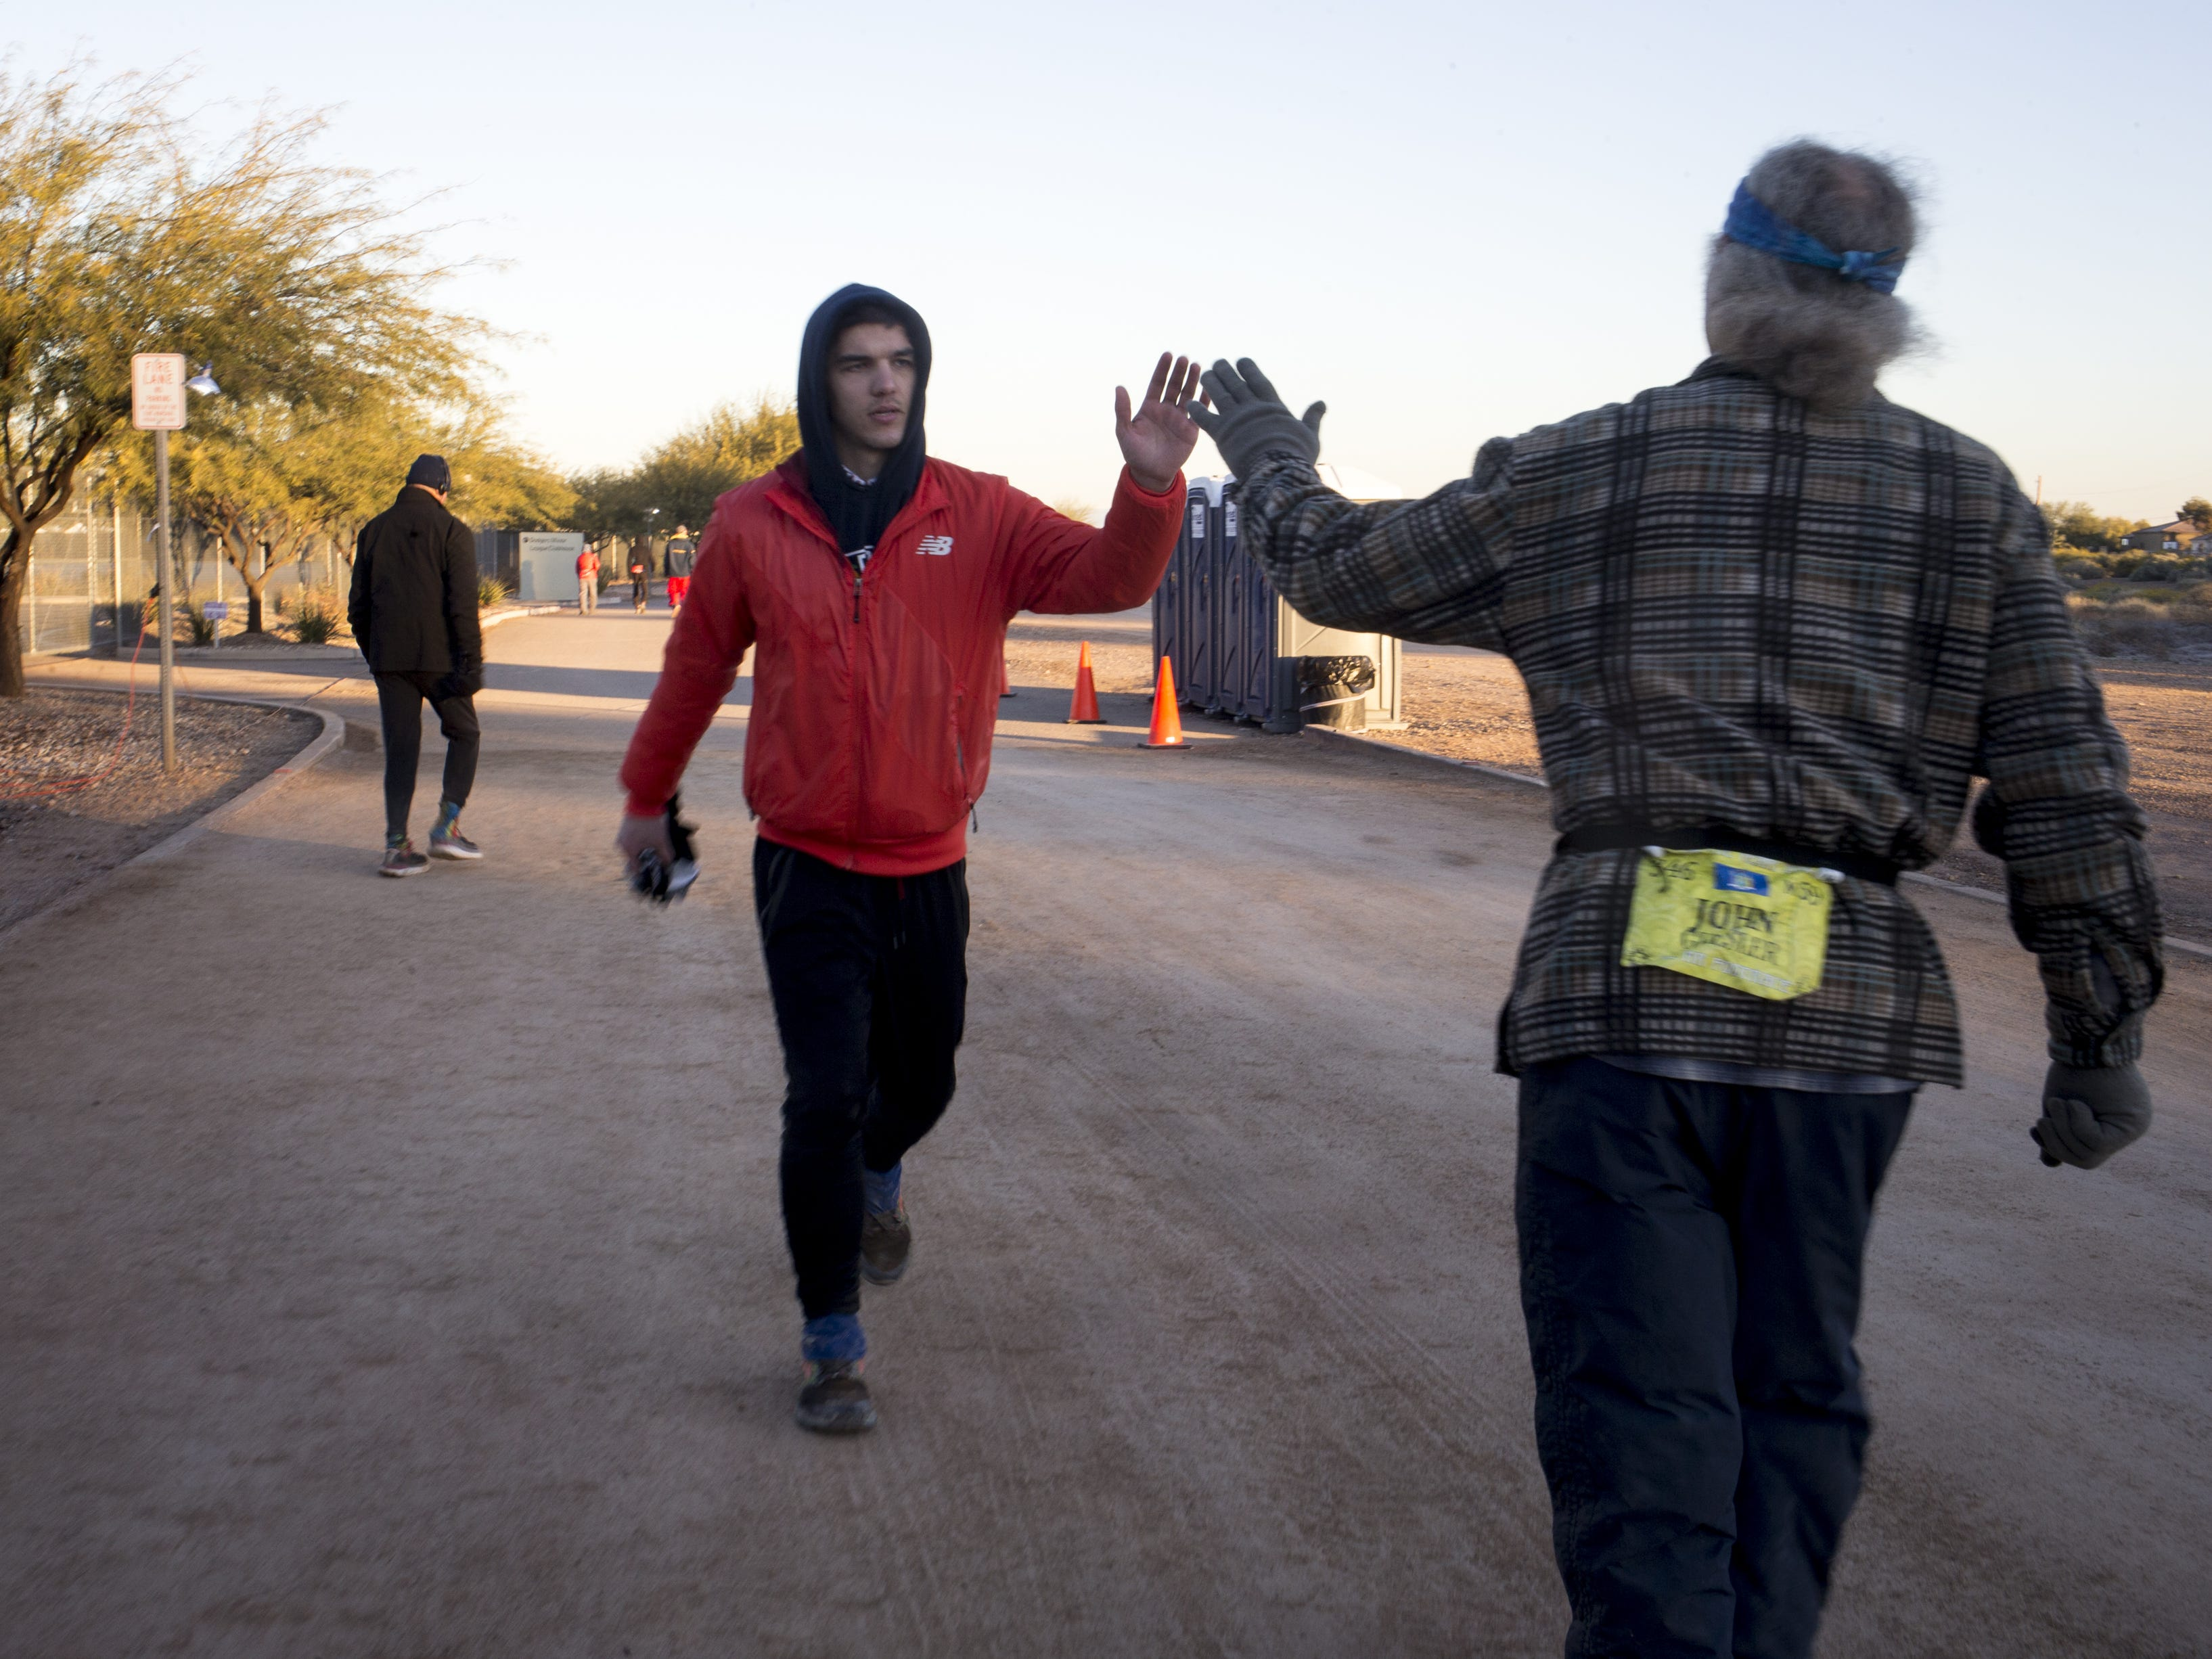 John Geesler (right) is high-fived by Gabriel Huseas (center), January 3, 2019, during the Across the Years Race at Camelback Ranch, 10710 W Camelback Road, Glendale. Geesler finished the six-day race with 395 laps/414 miles, placing him fifth.